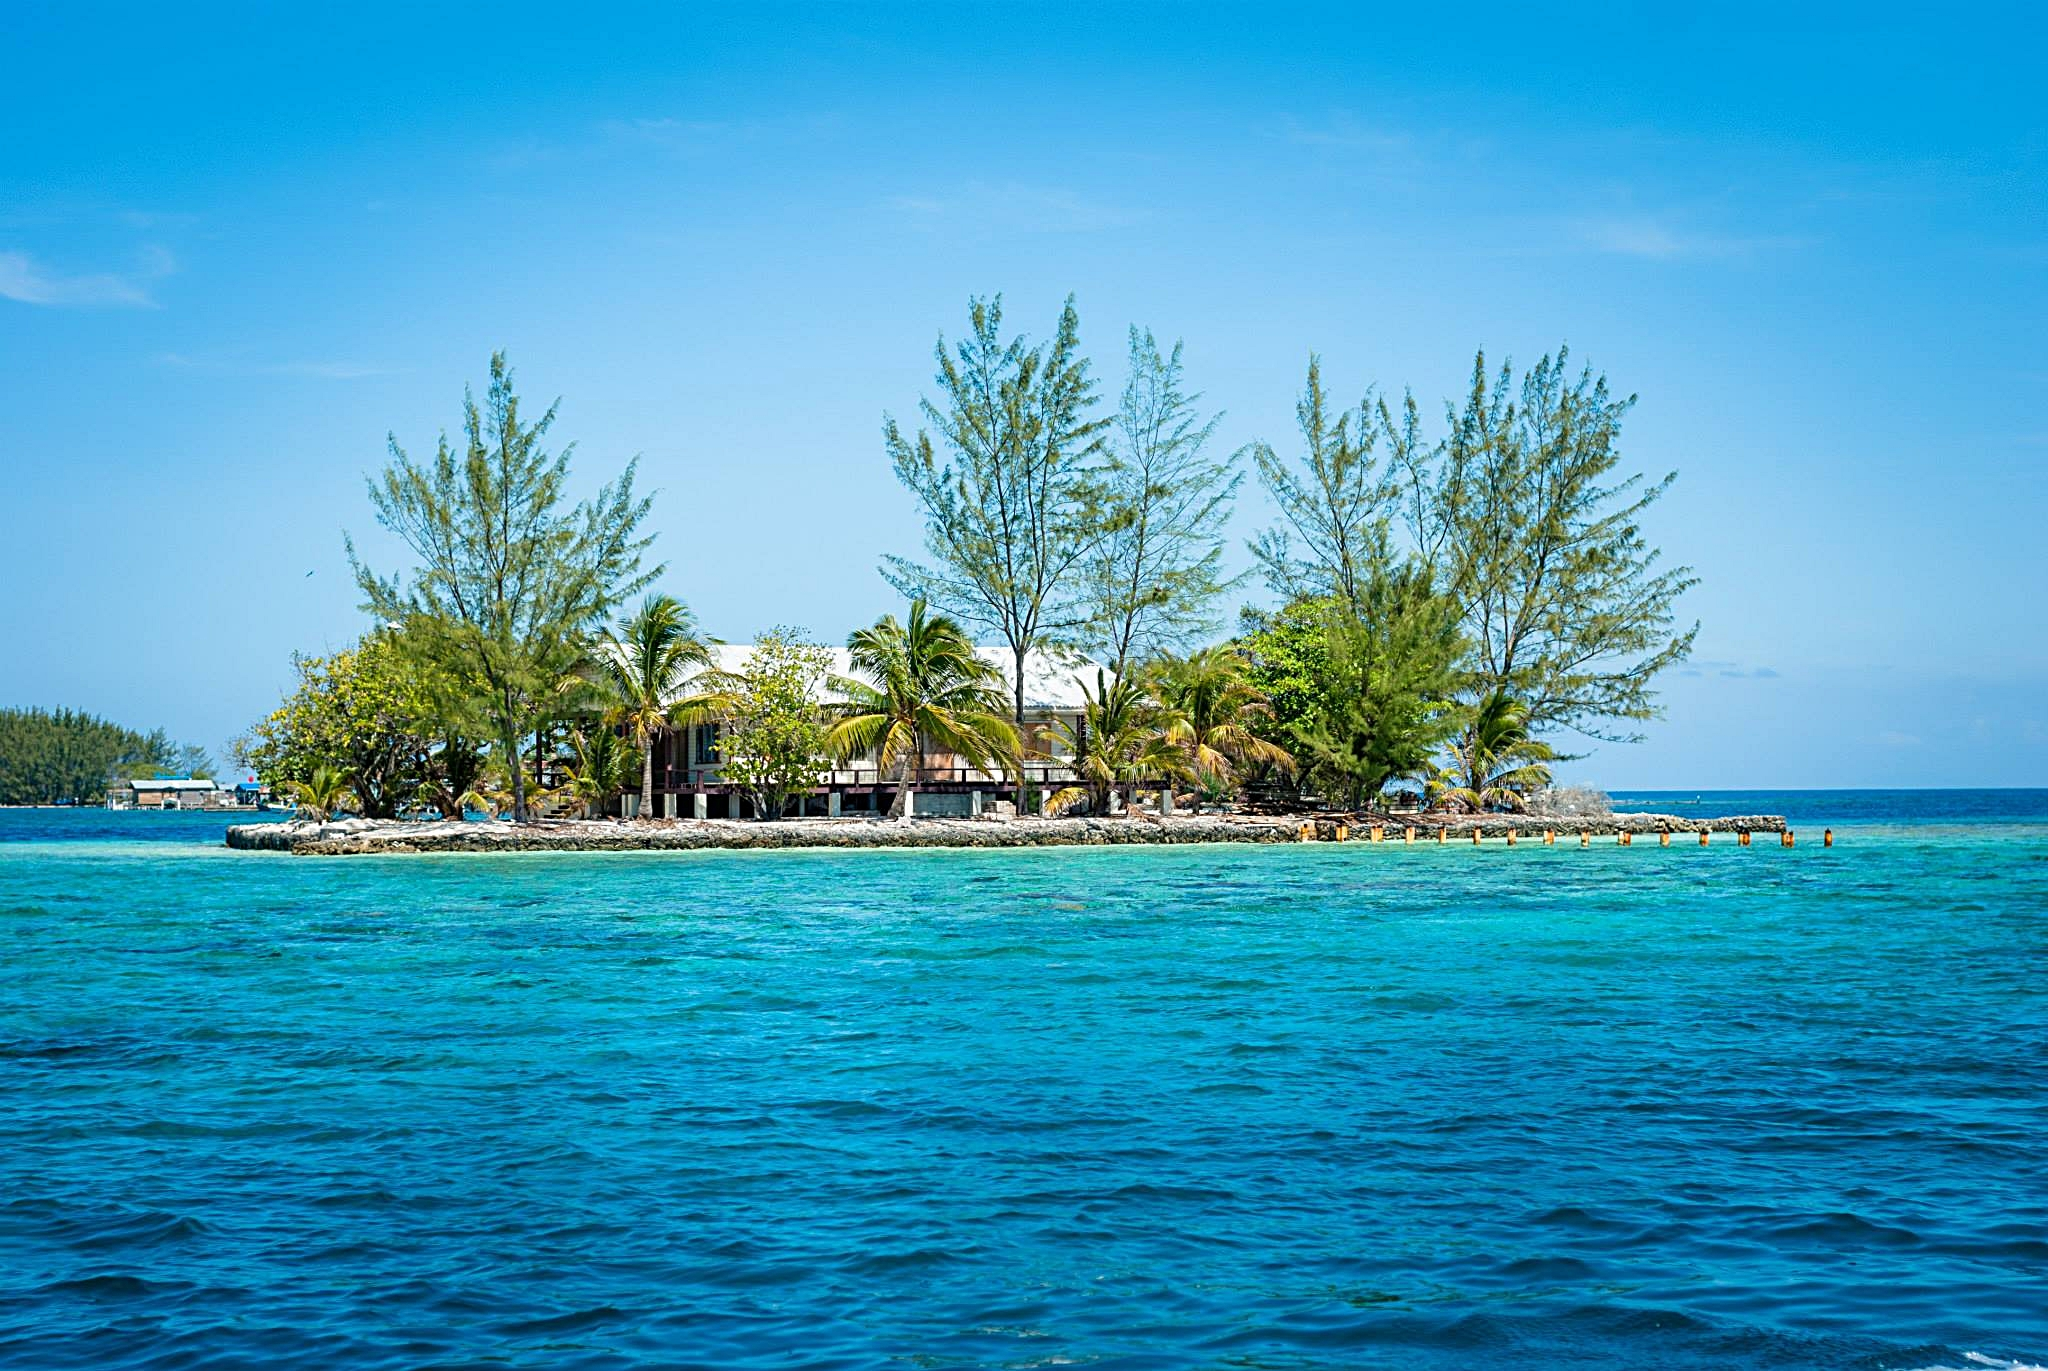 The Utila Cays and surrounding sites boasts some of the most beautiful sea mounds in the region